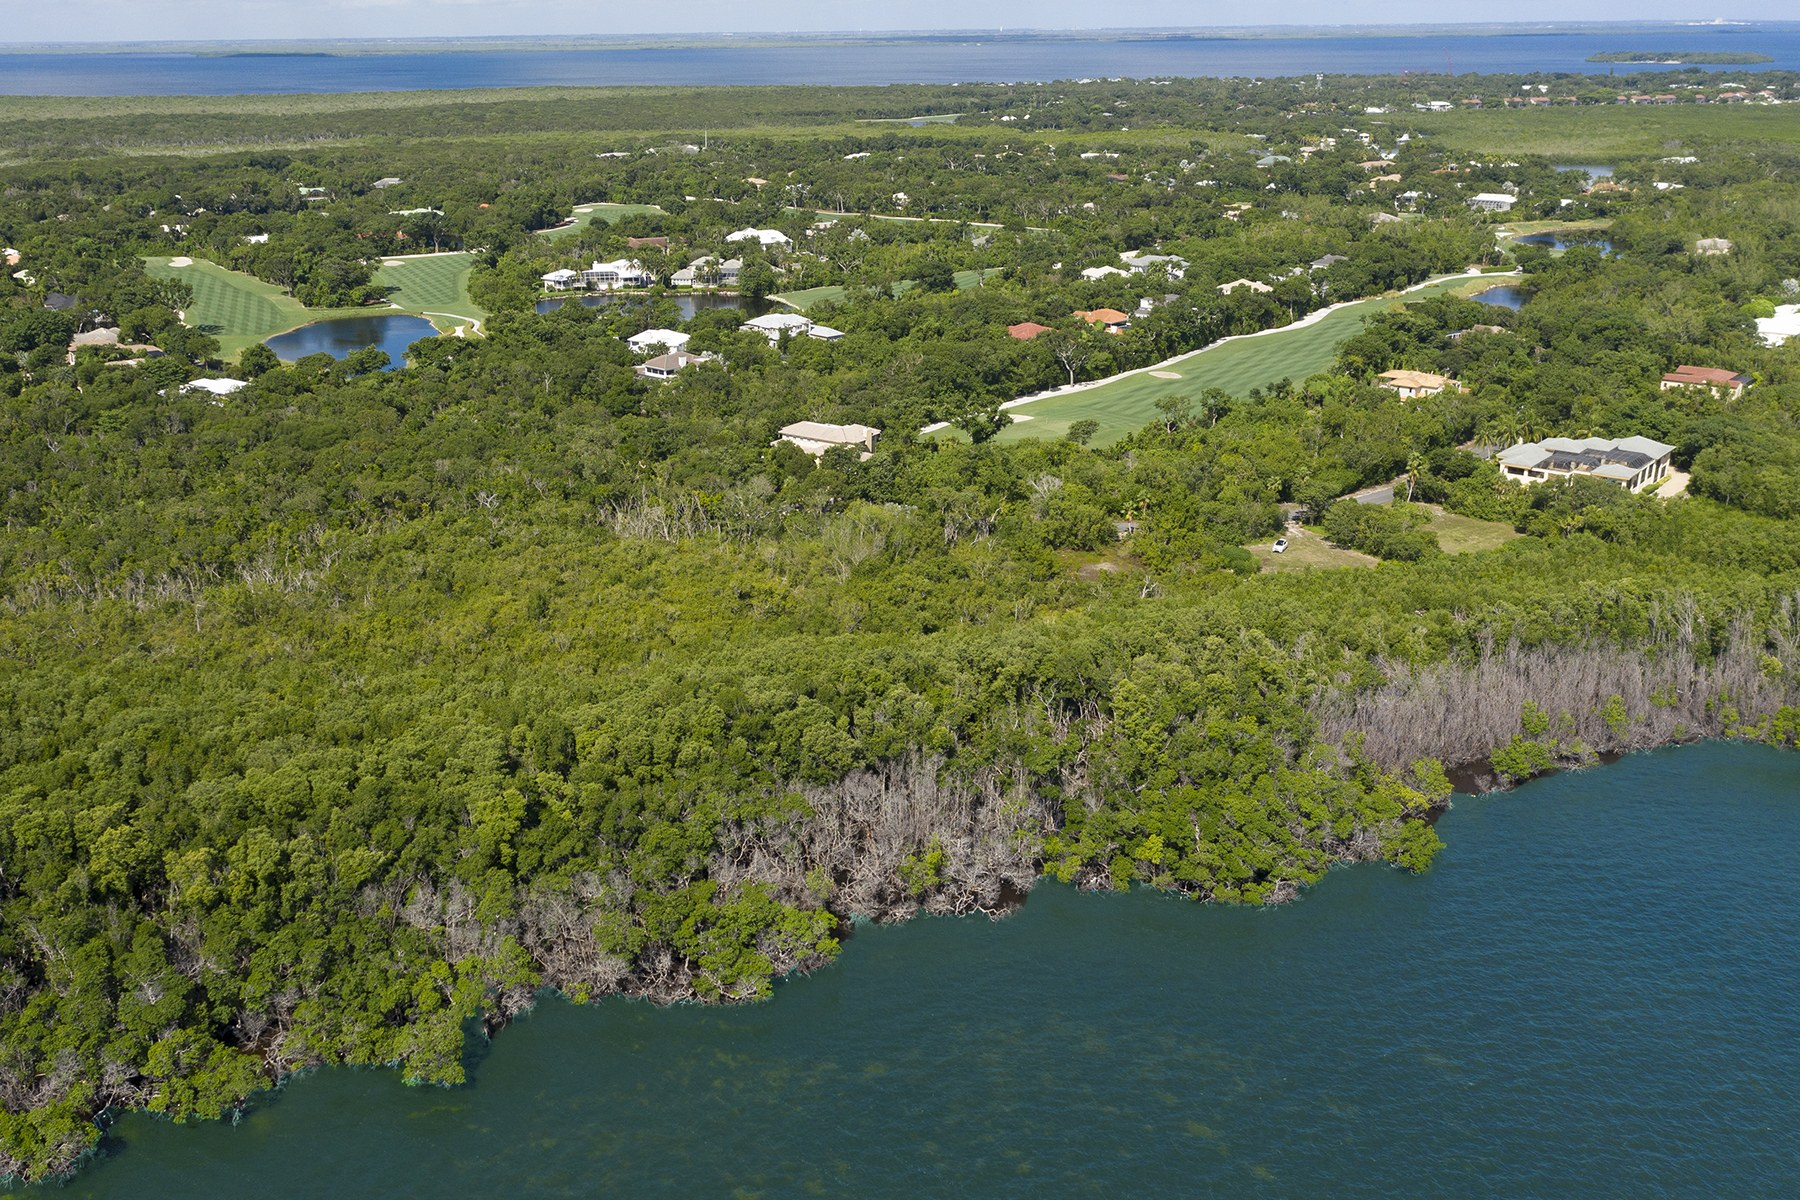 Land for Sale at 640 Coral Lane, Key Largo, FL Key Largo, Florida 33037 United States